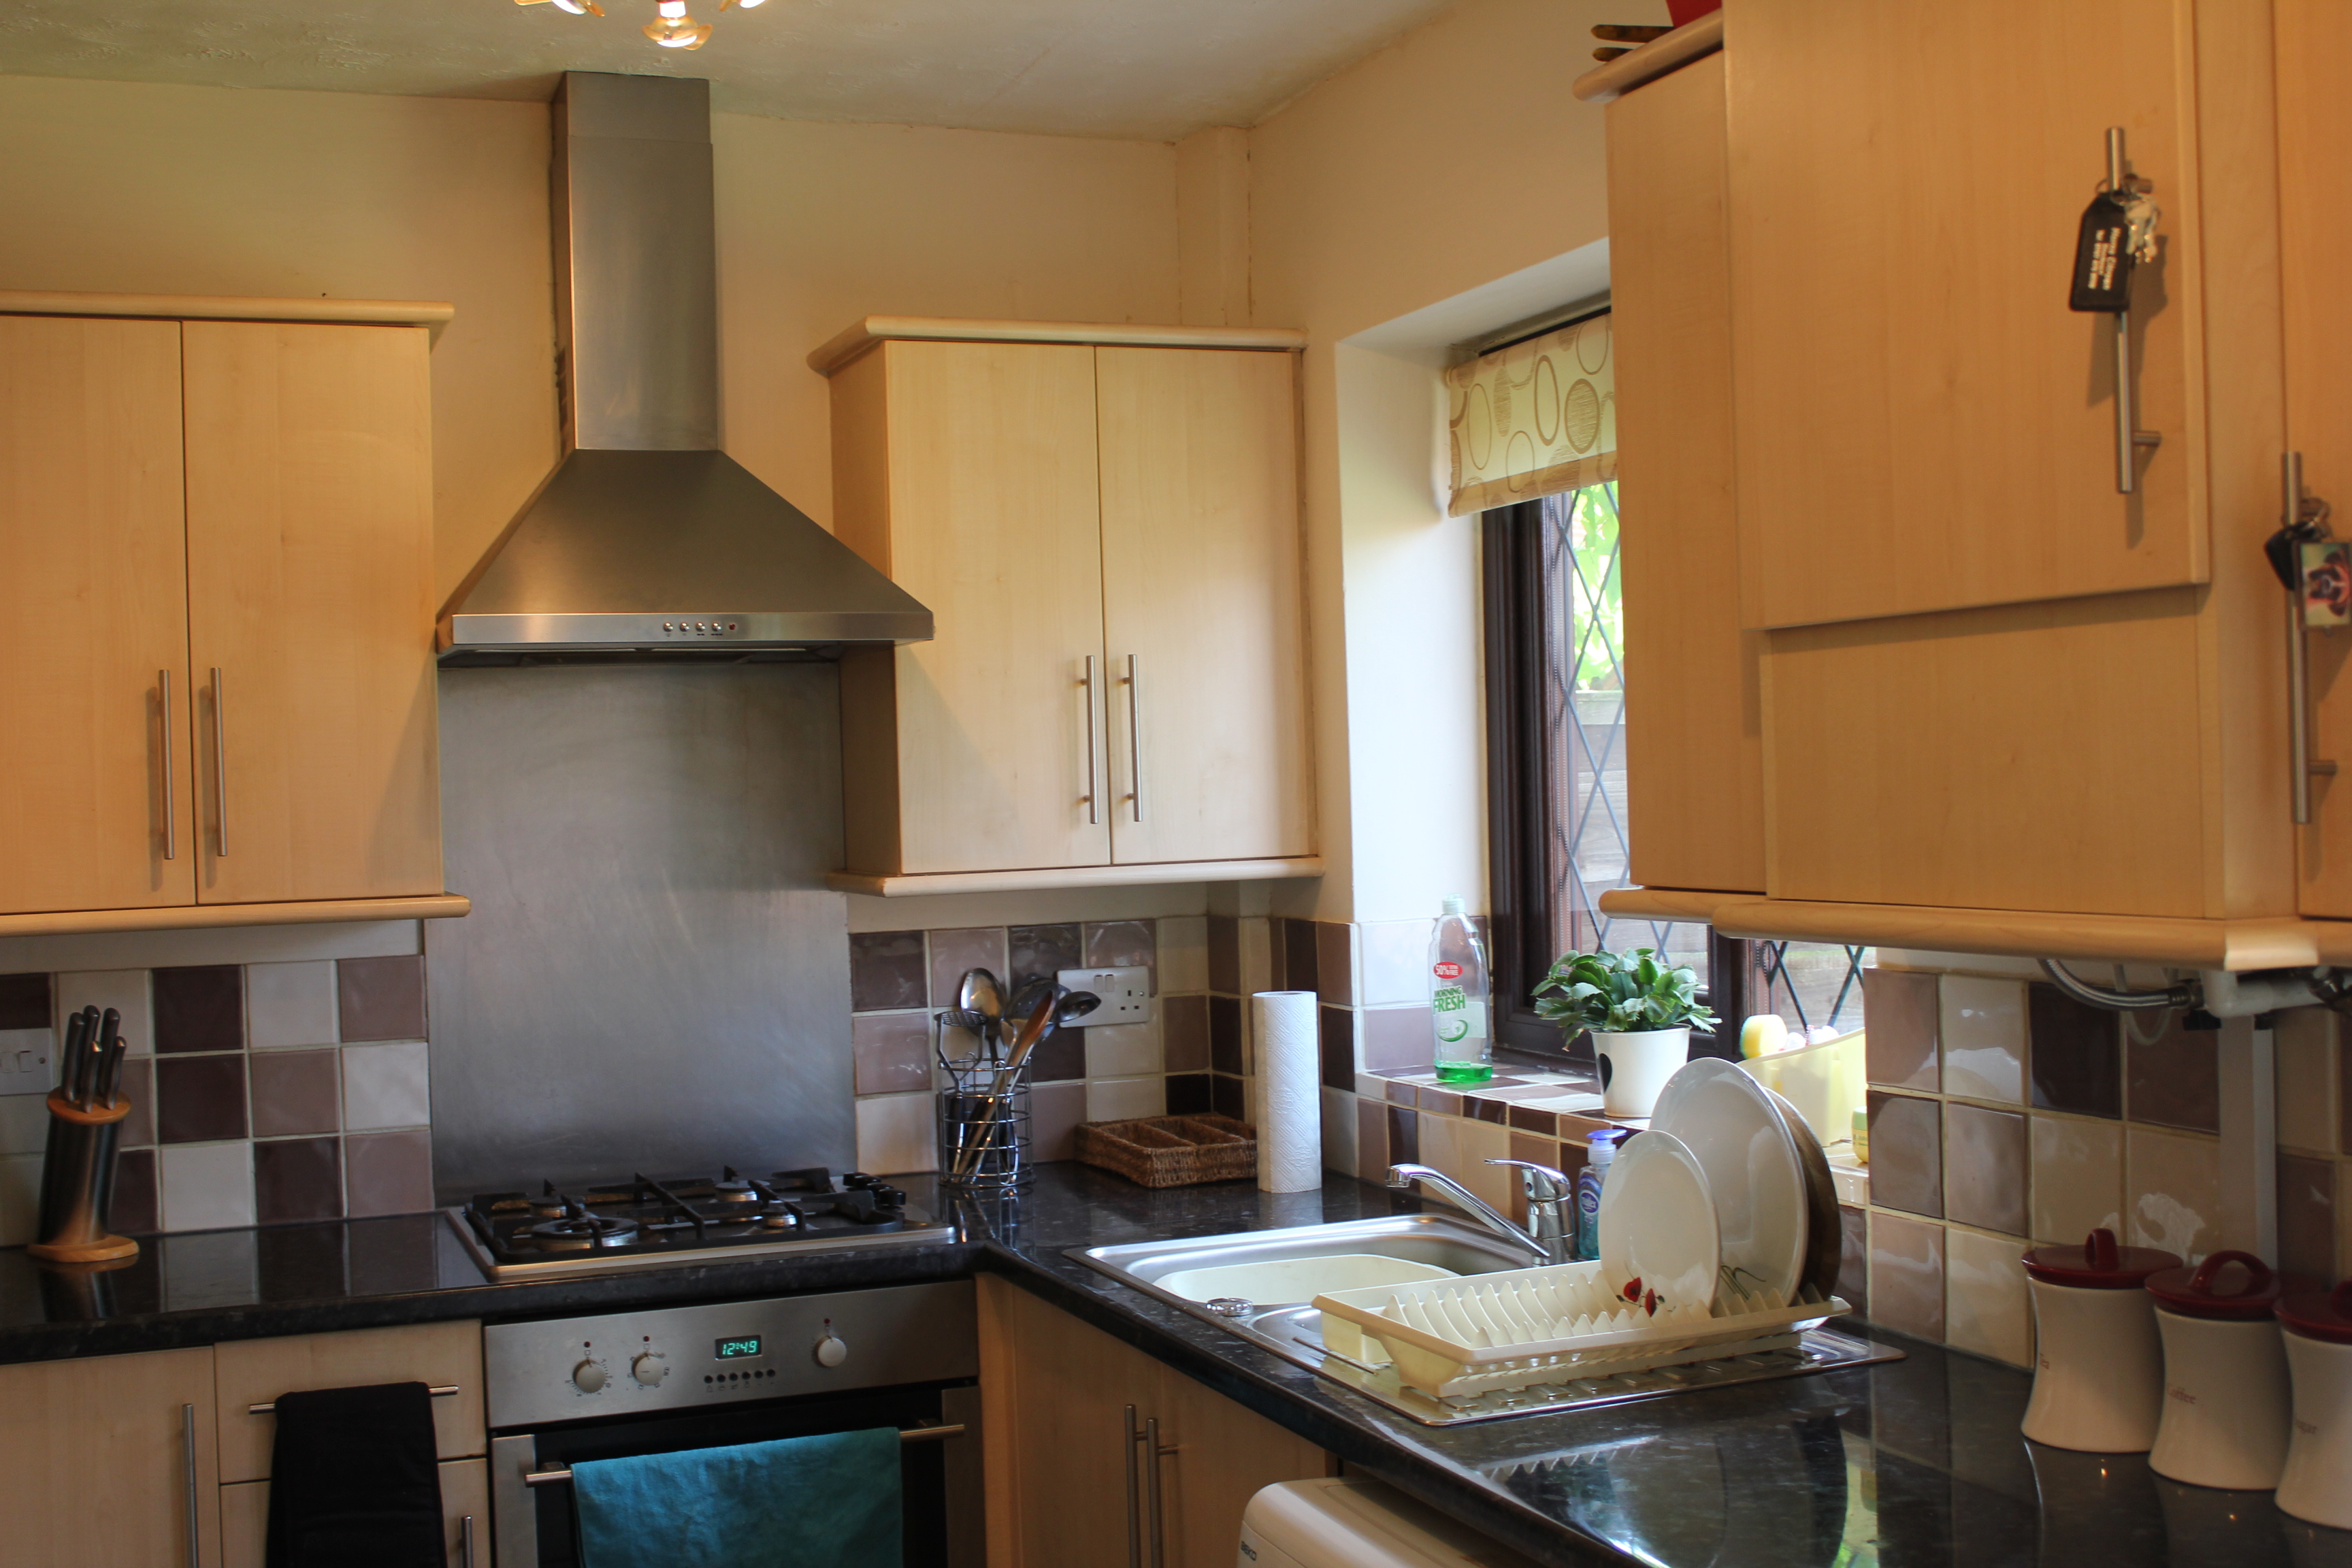 Bed House To Rent In Stockport Private Landlord